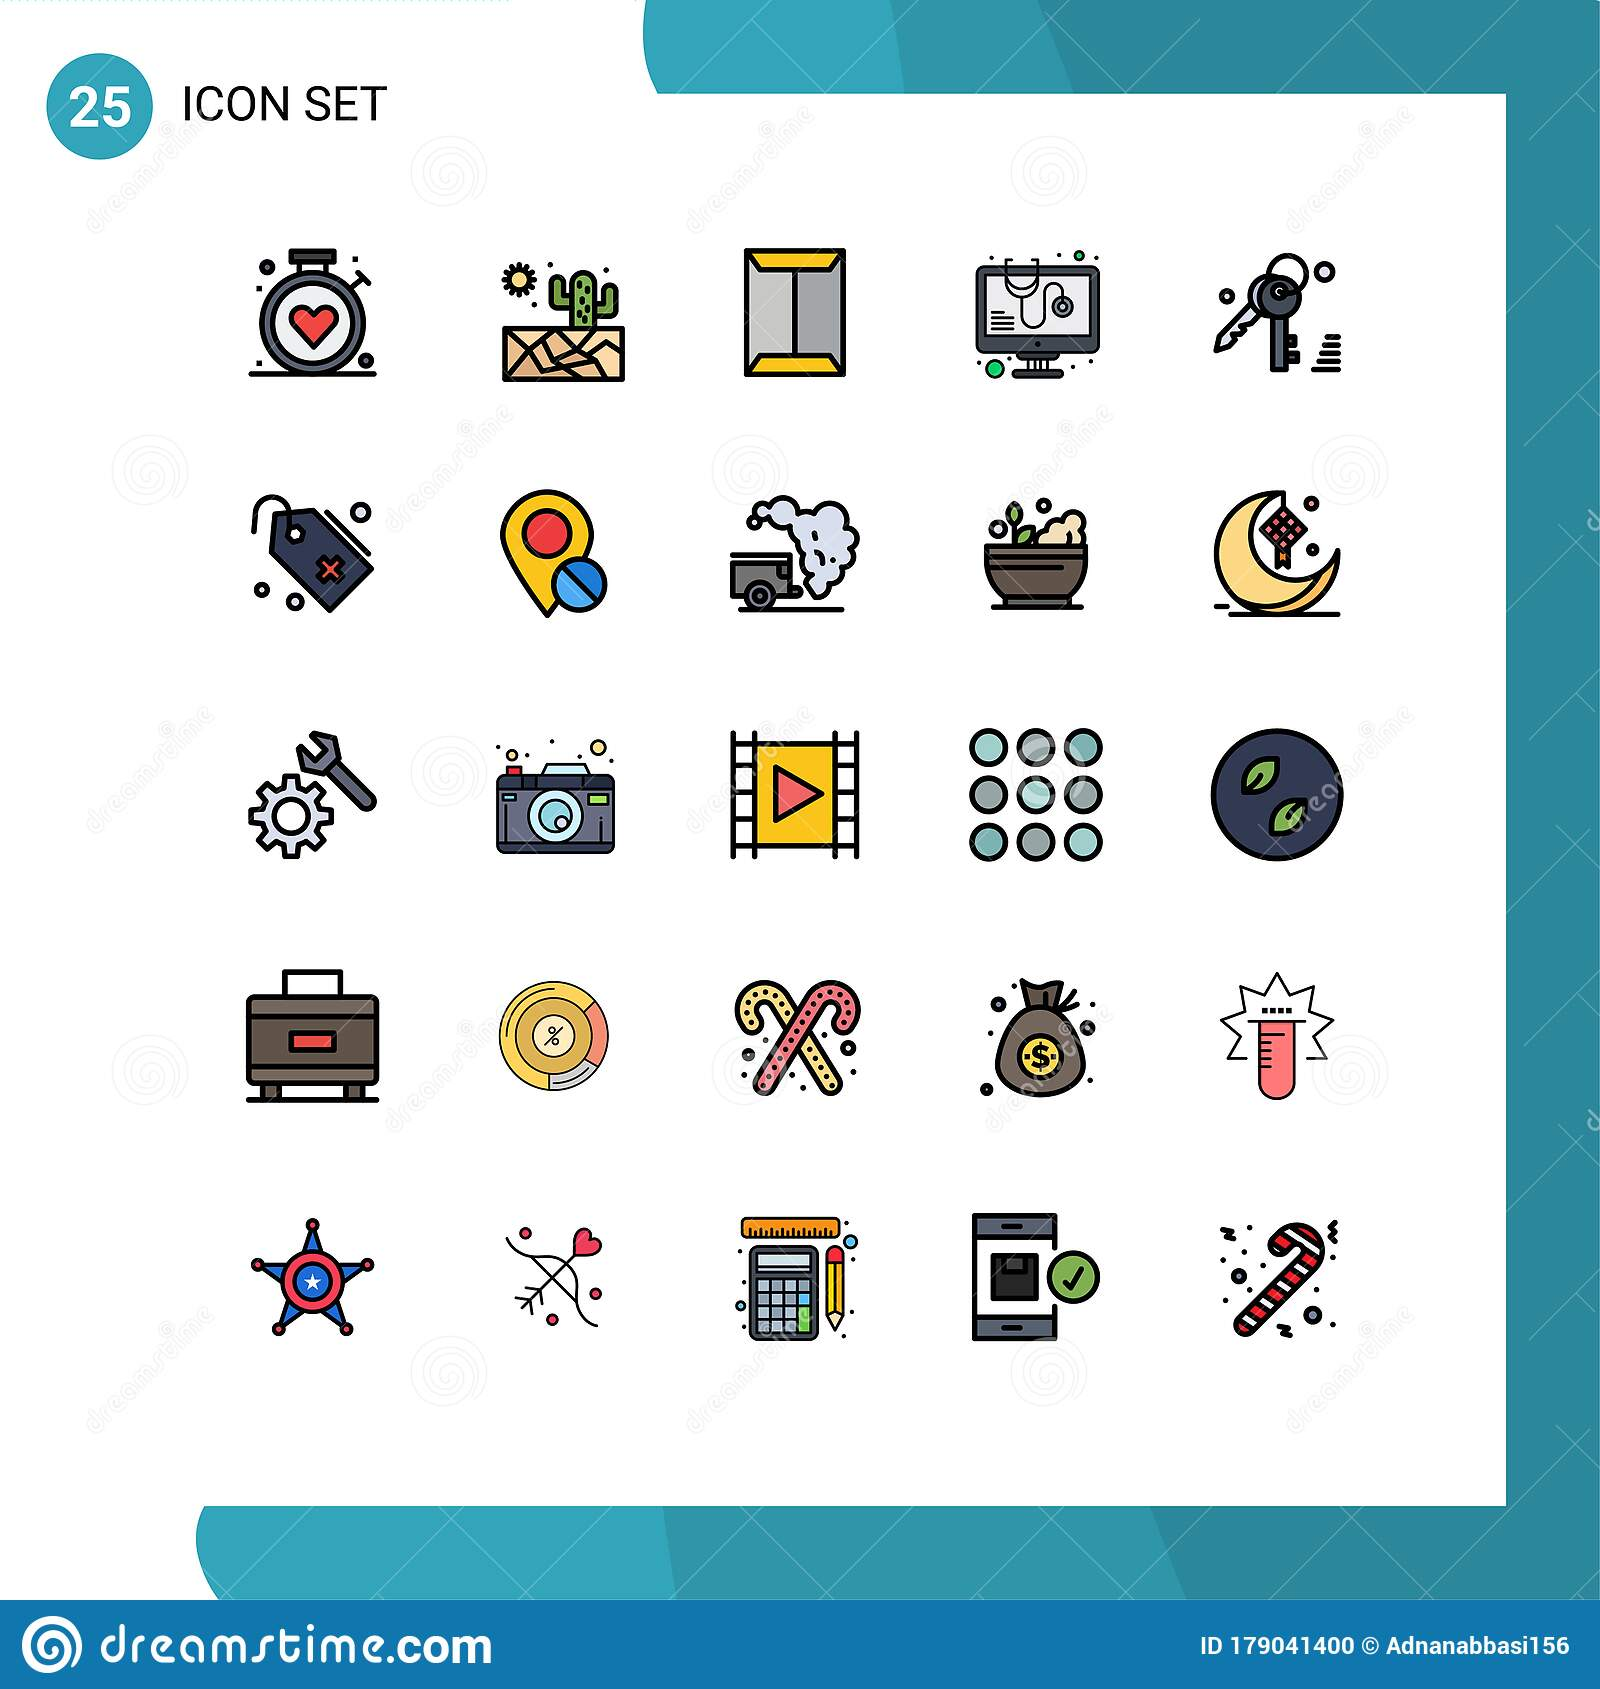 25 Creative Icons Modern Signs And Symbols Of Key Virus Rack Software Diagnosed Stock Vector Illustration Of Gdpr Cactus 179041400